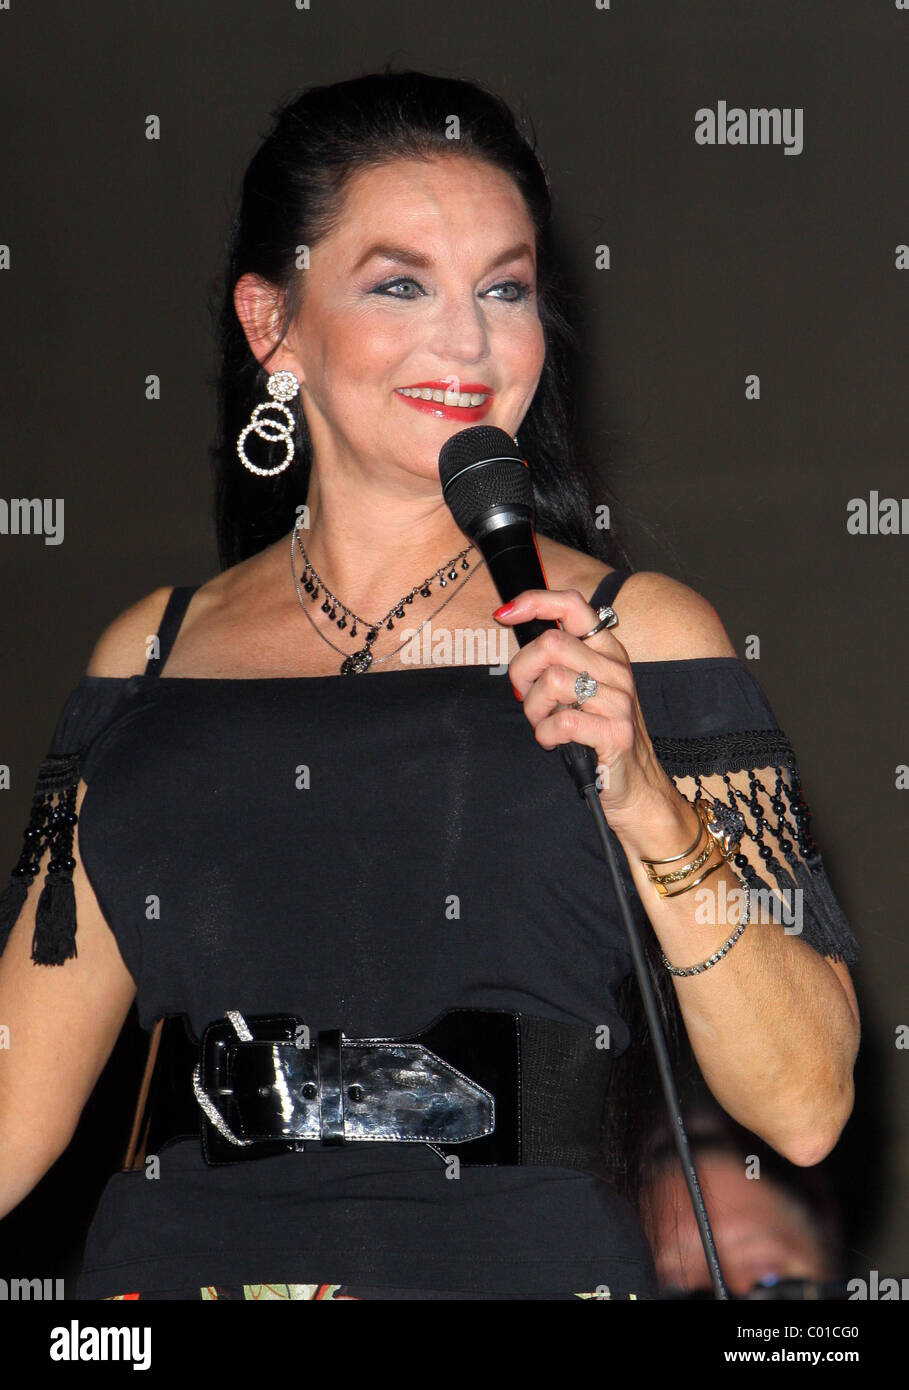 Crystal Gayle performing at The Poolside Concert Series held at The Silverton Casino Lodge Las Vegas, Nevada - 04.08.07 - Stock Image